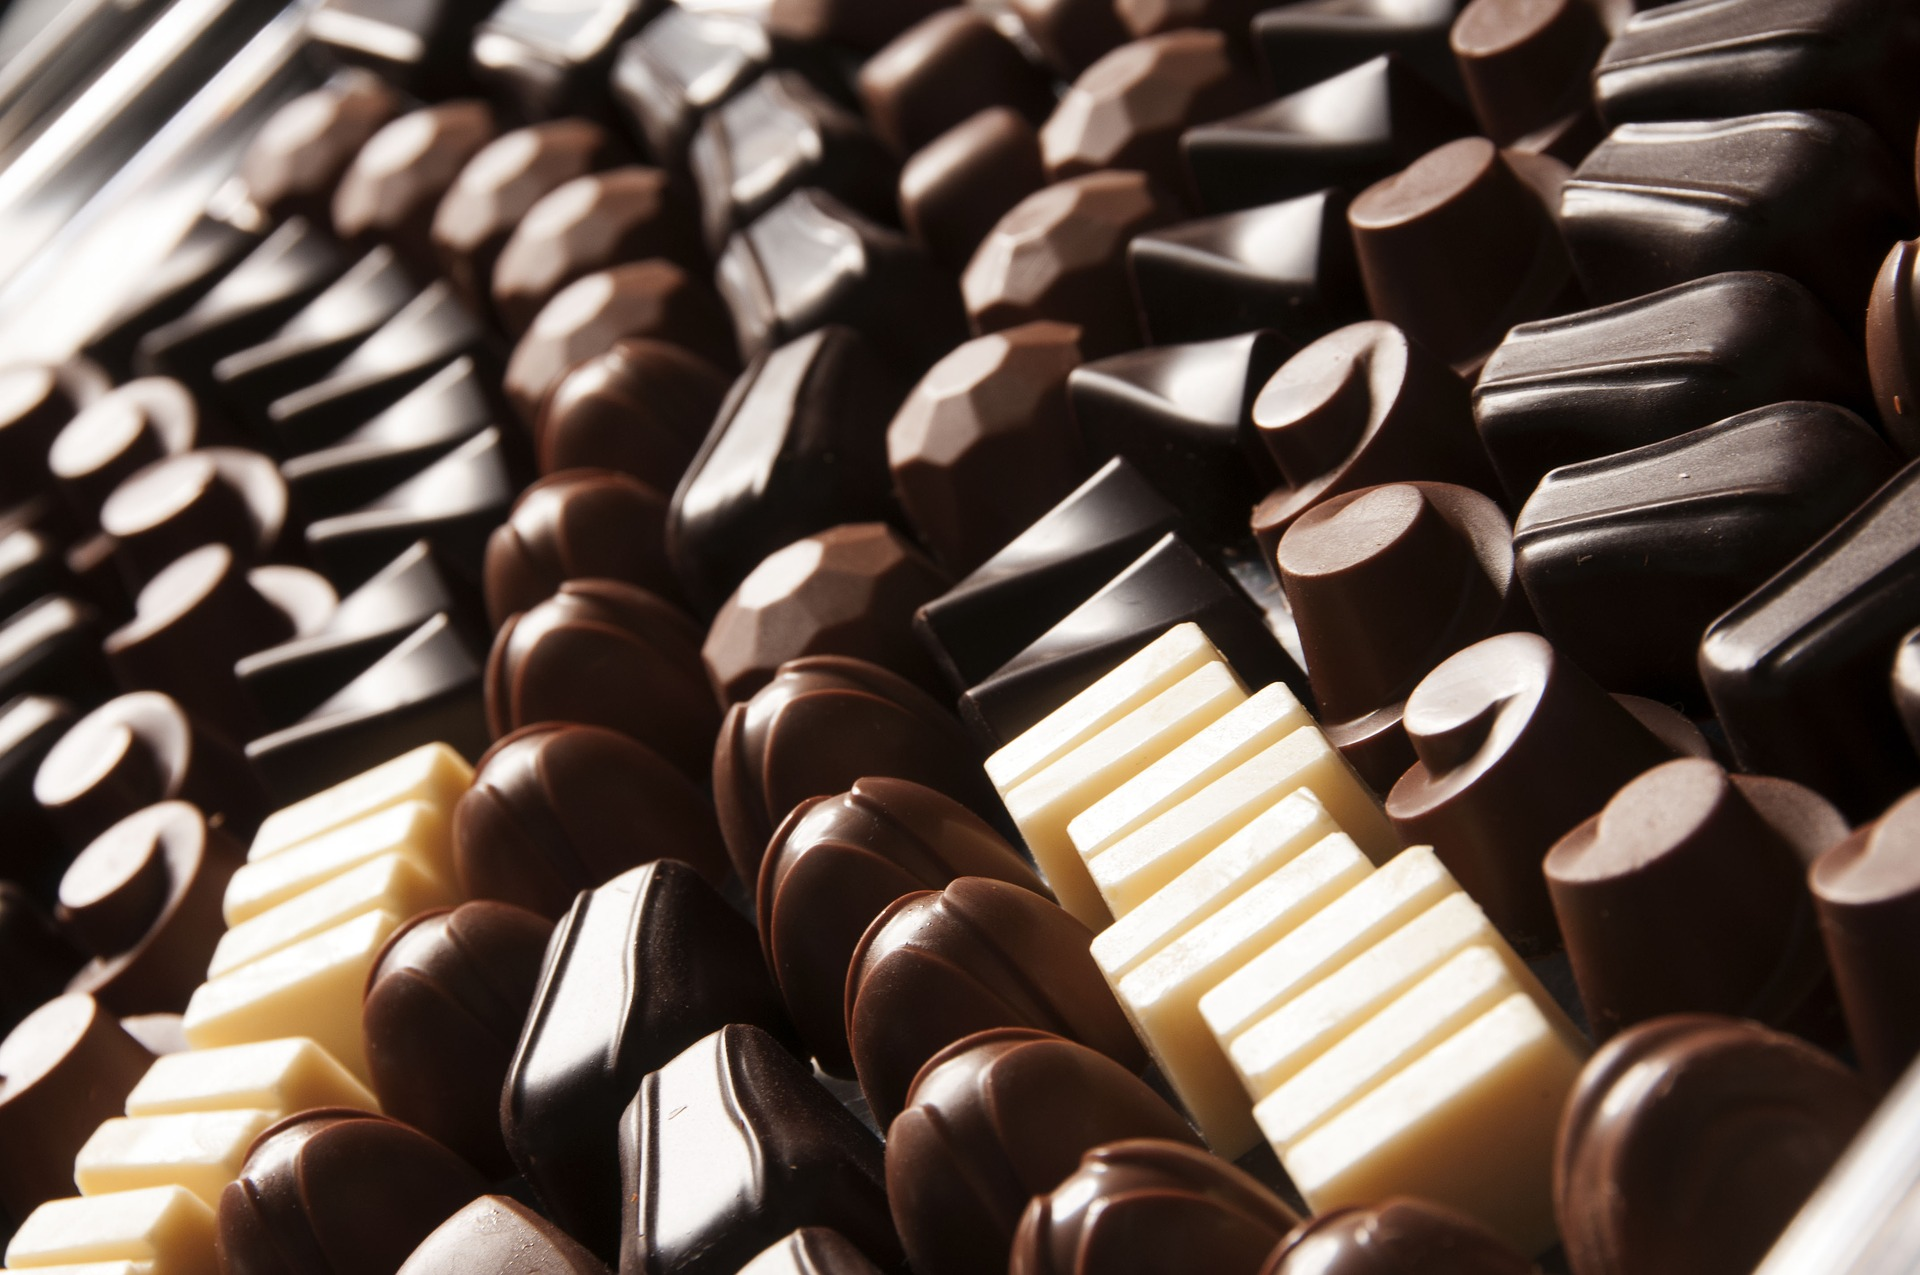 The Divine World of Chocolate